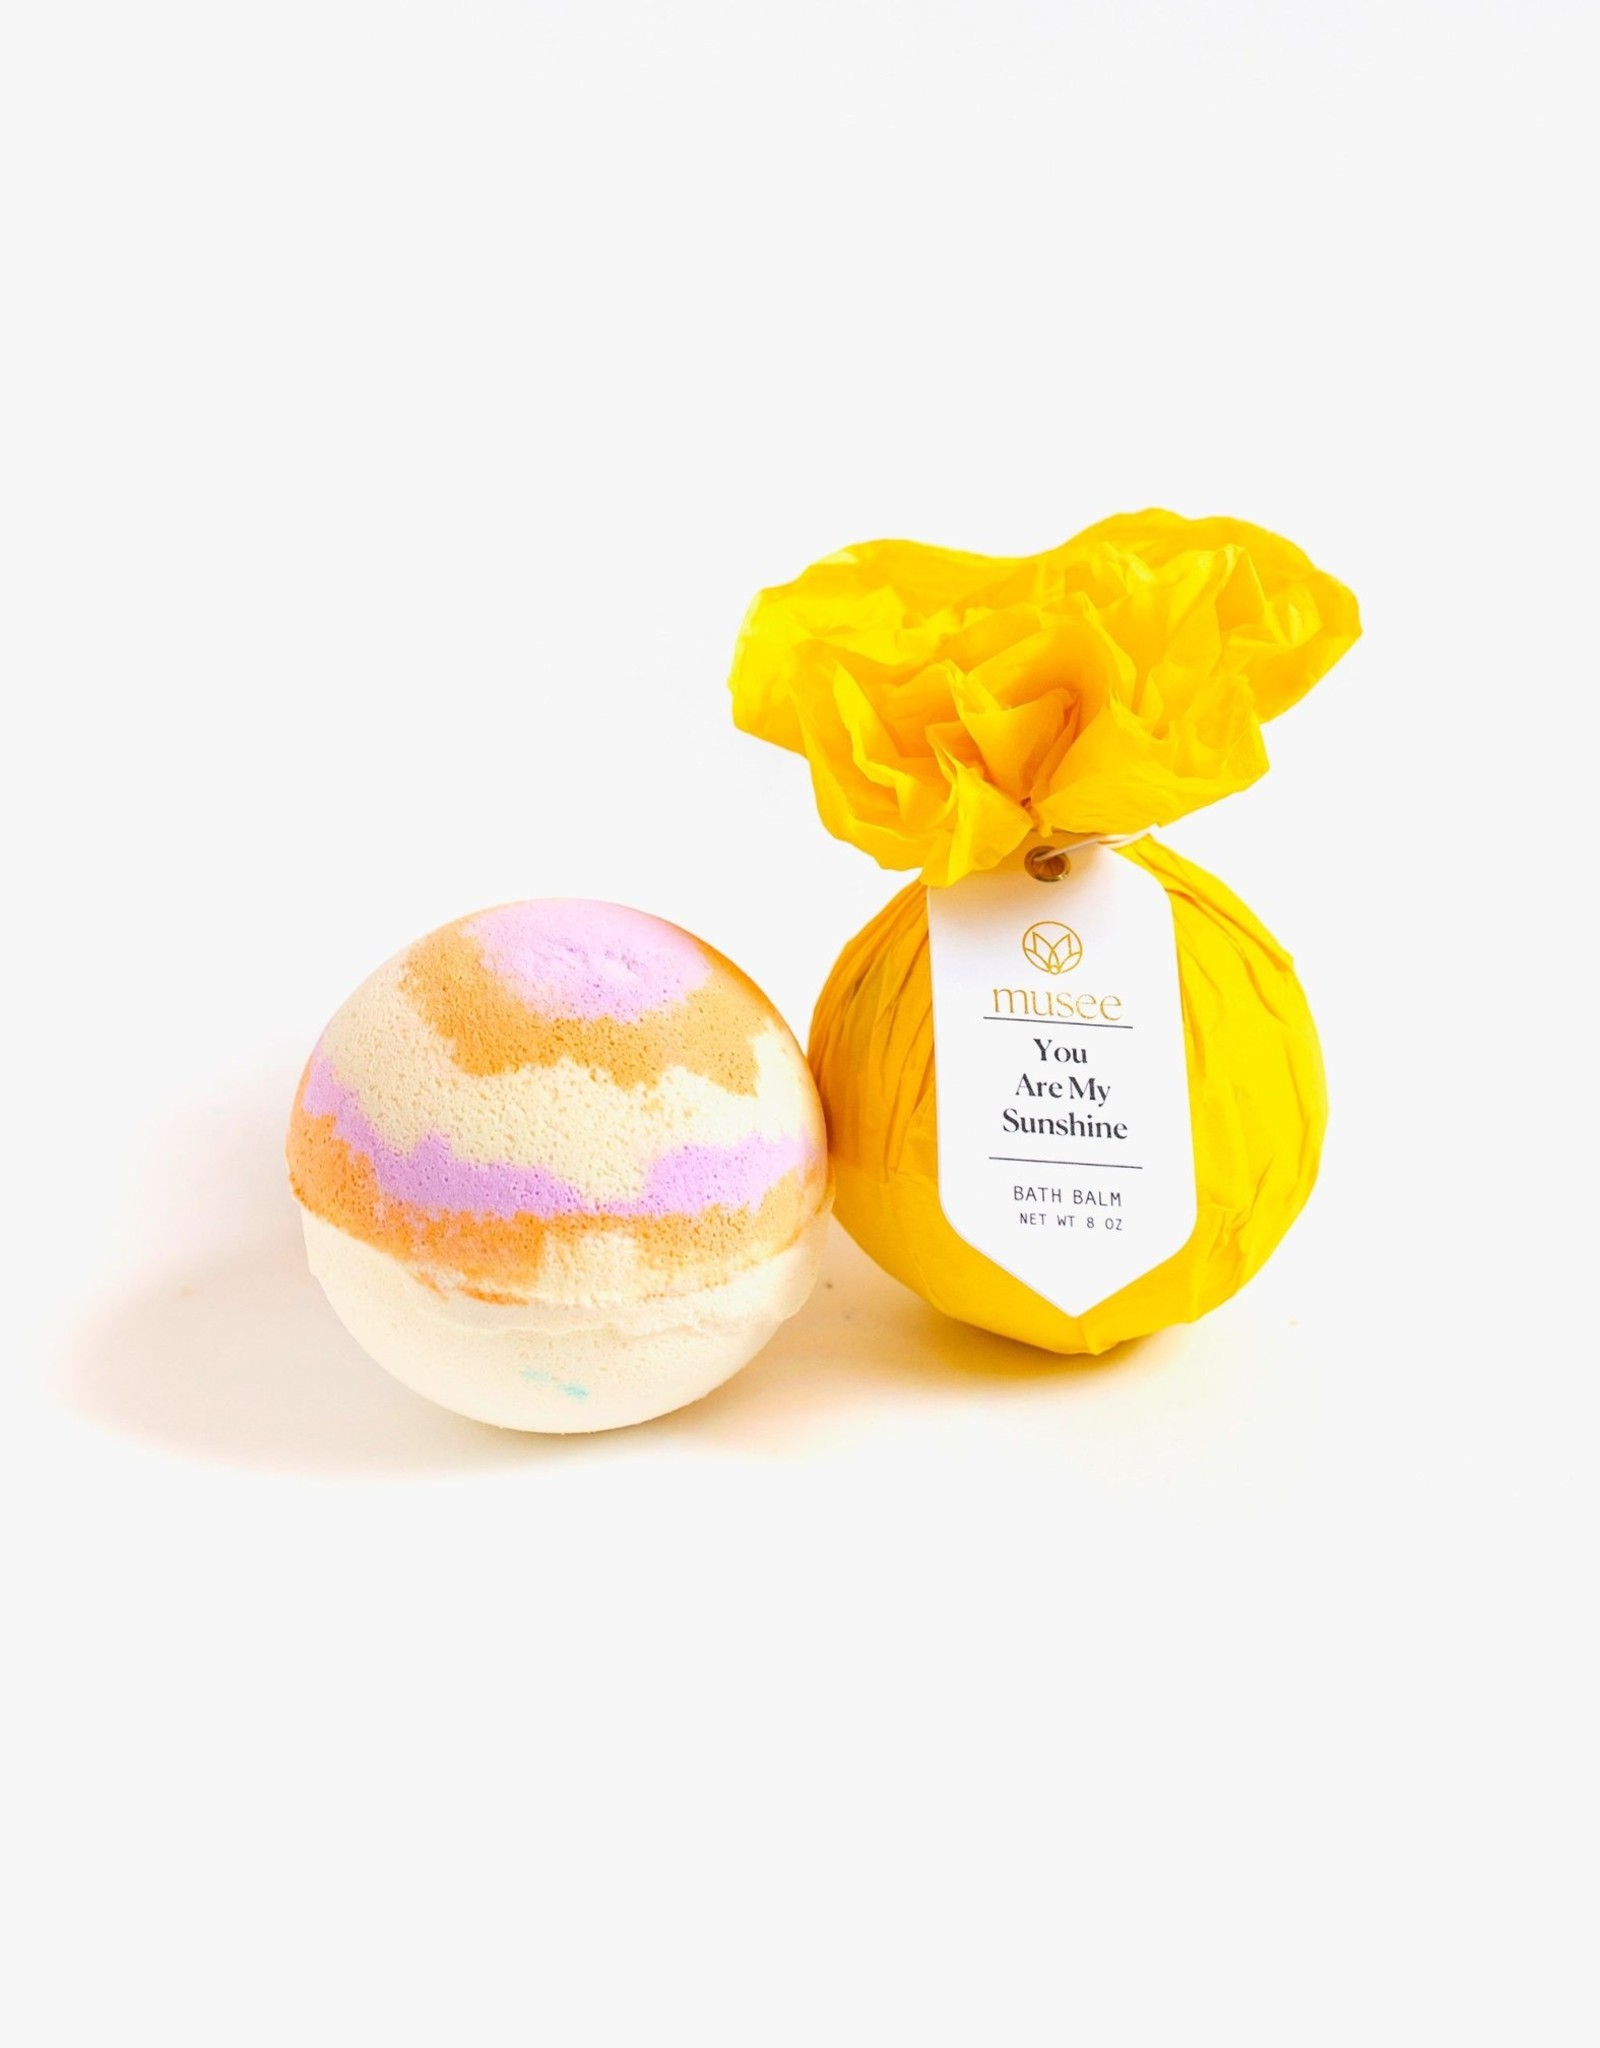 Musee Bath Bomb - You are my Sunshine